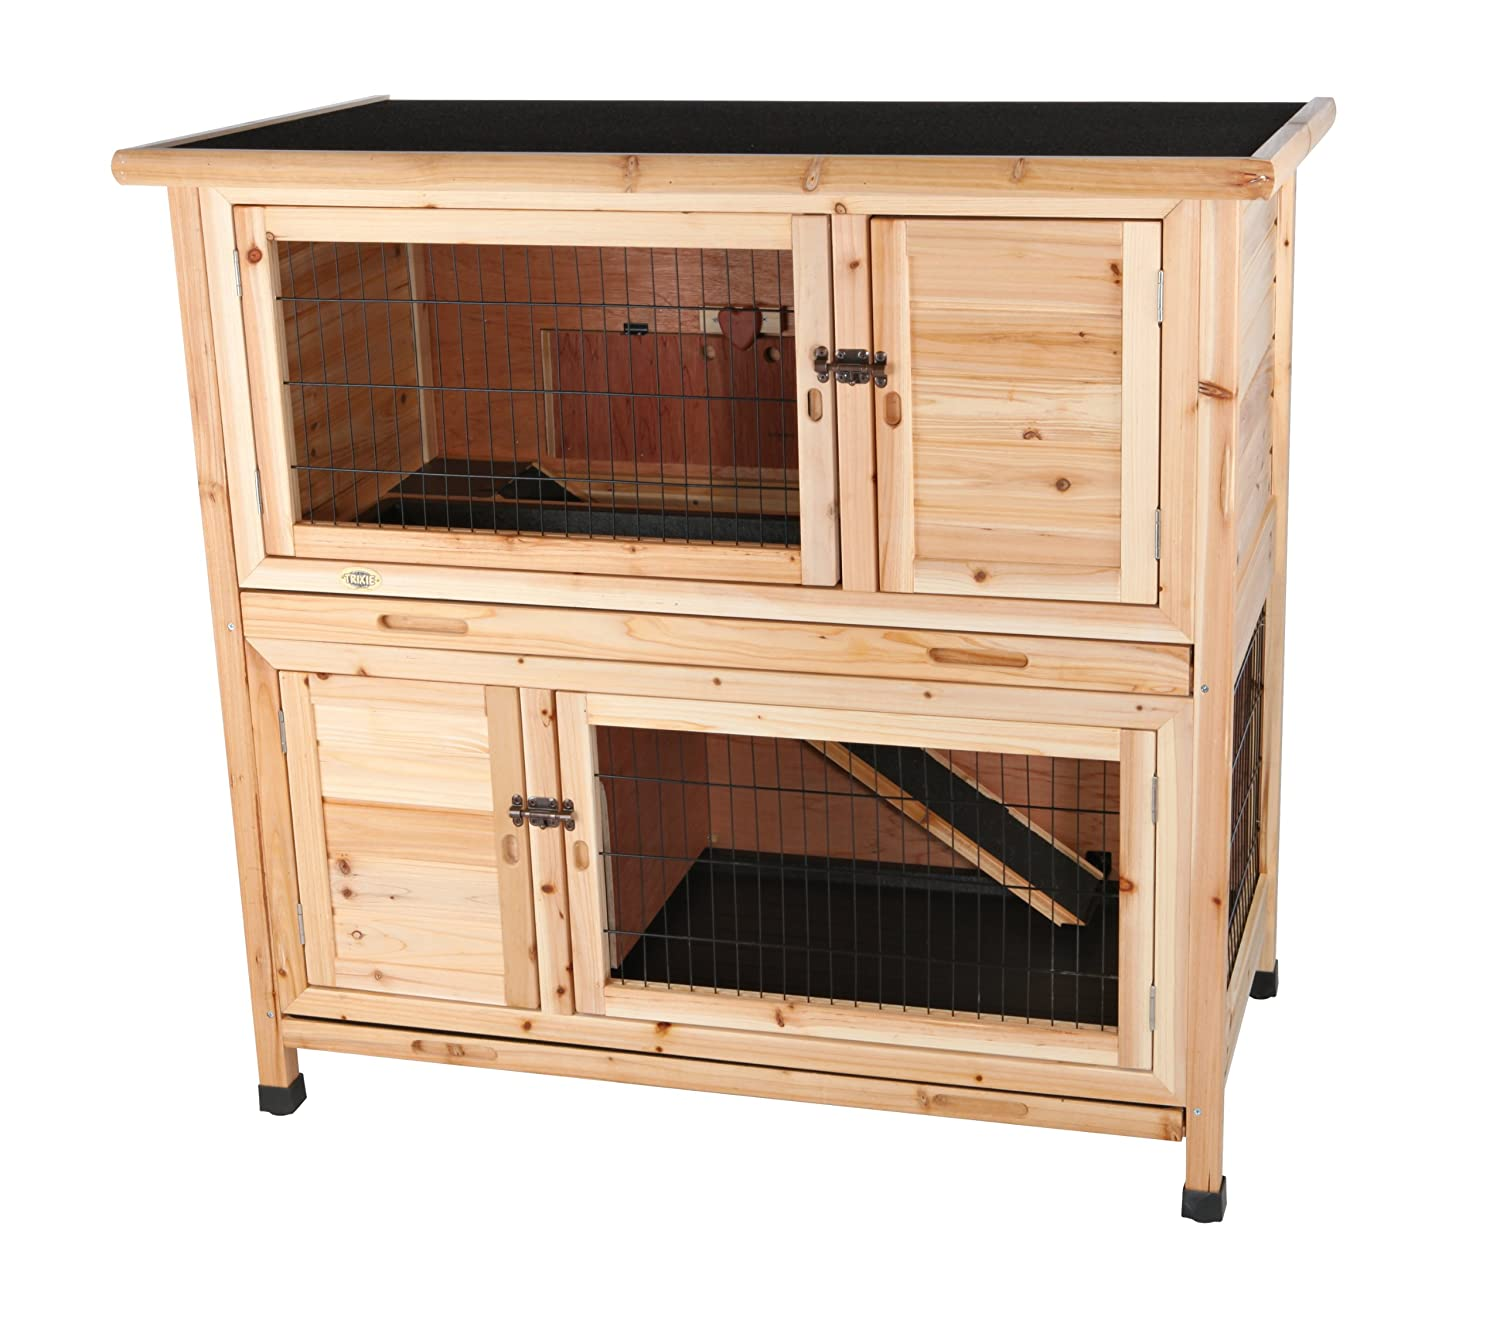 Diy Outdoor Rabbit Hutch Plans For Sale Plans Free